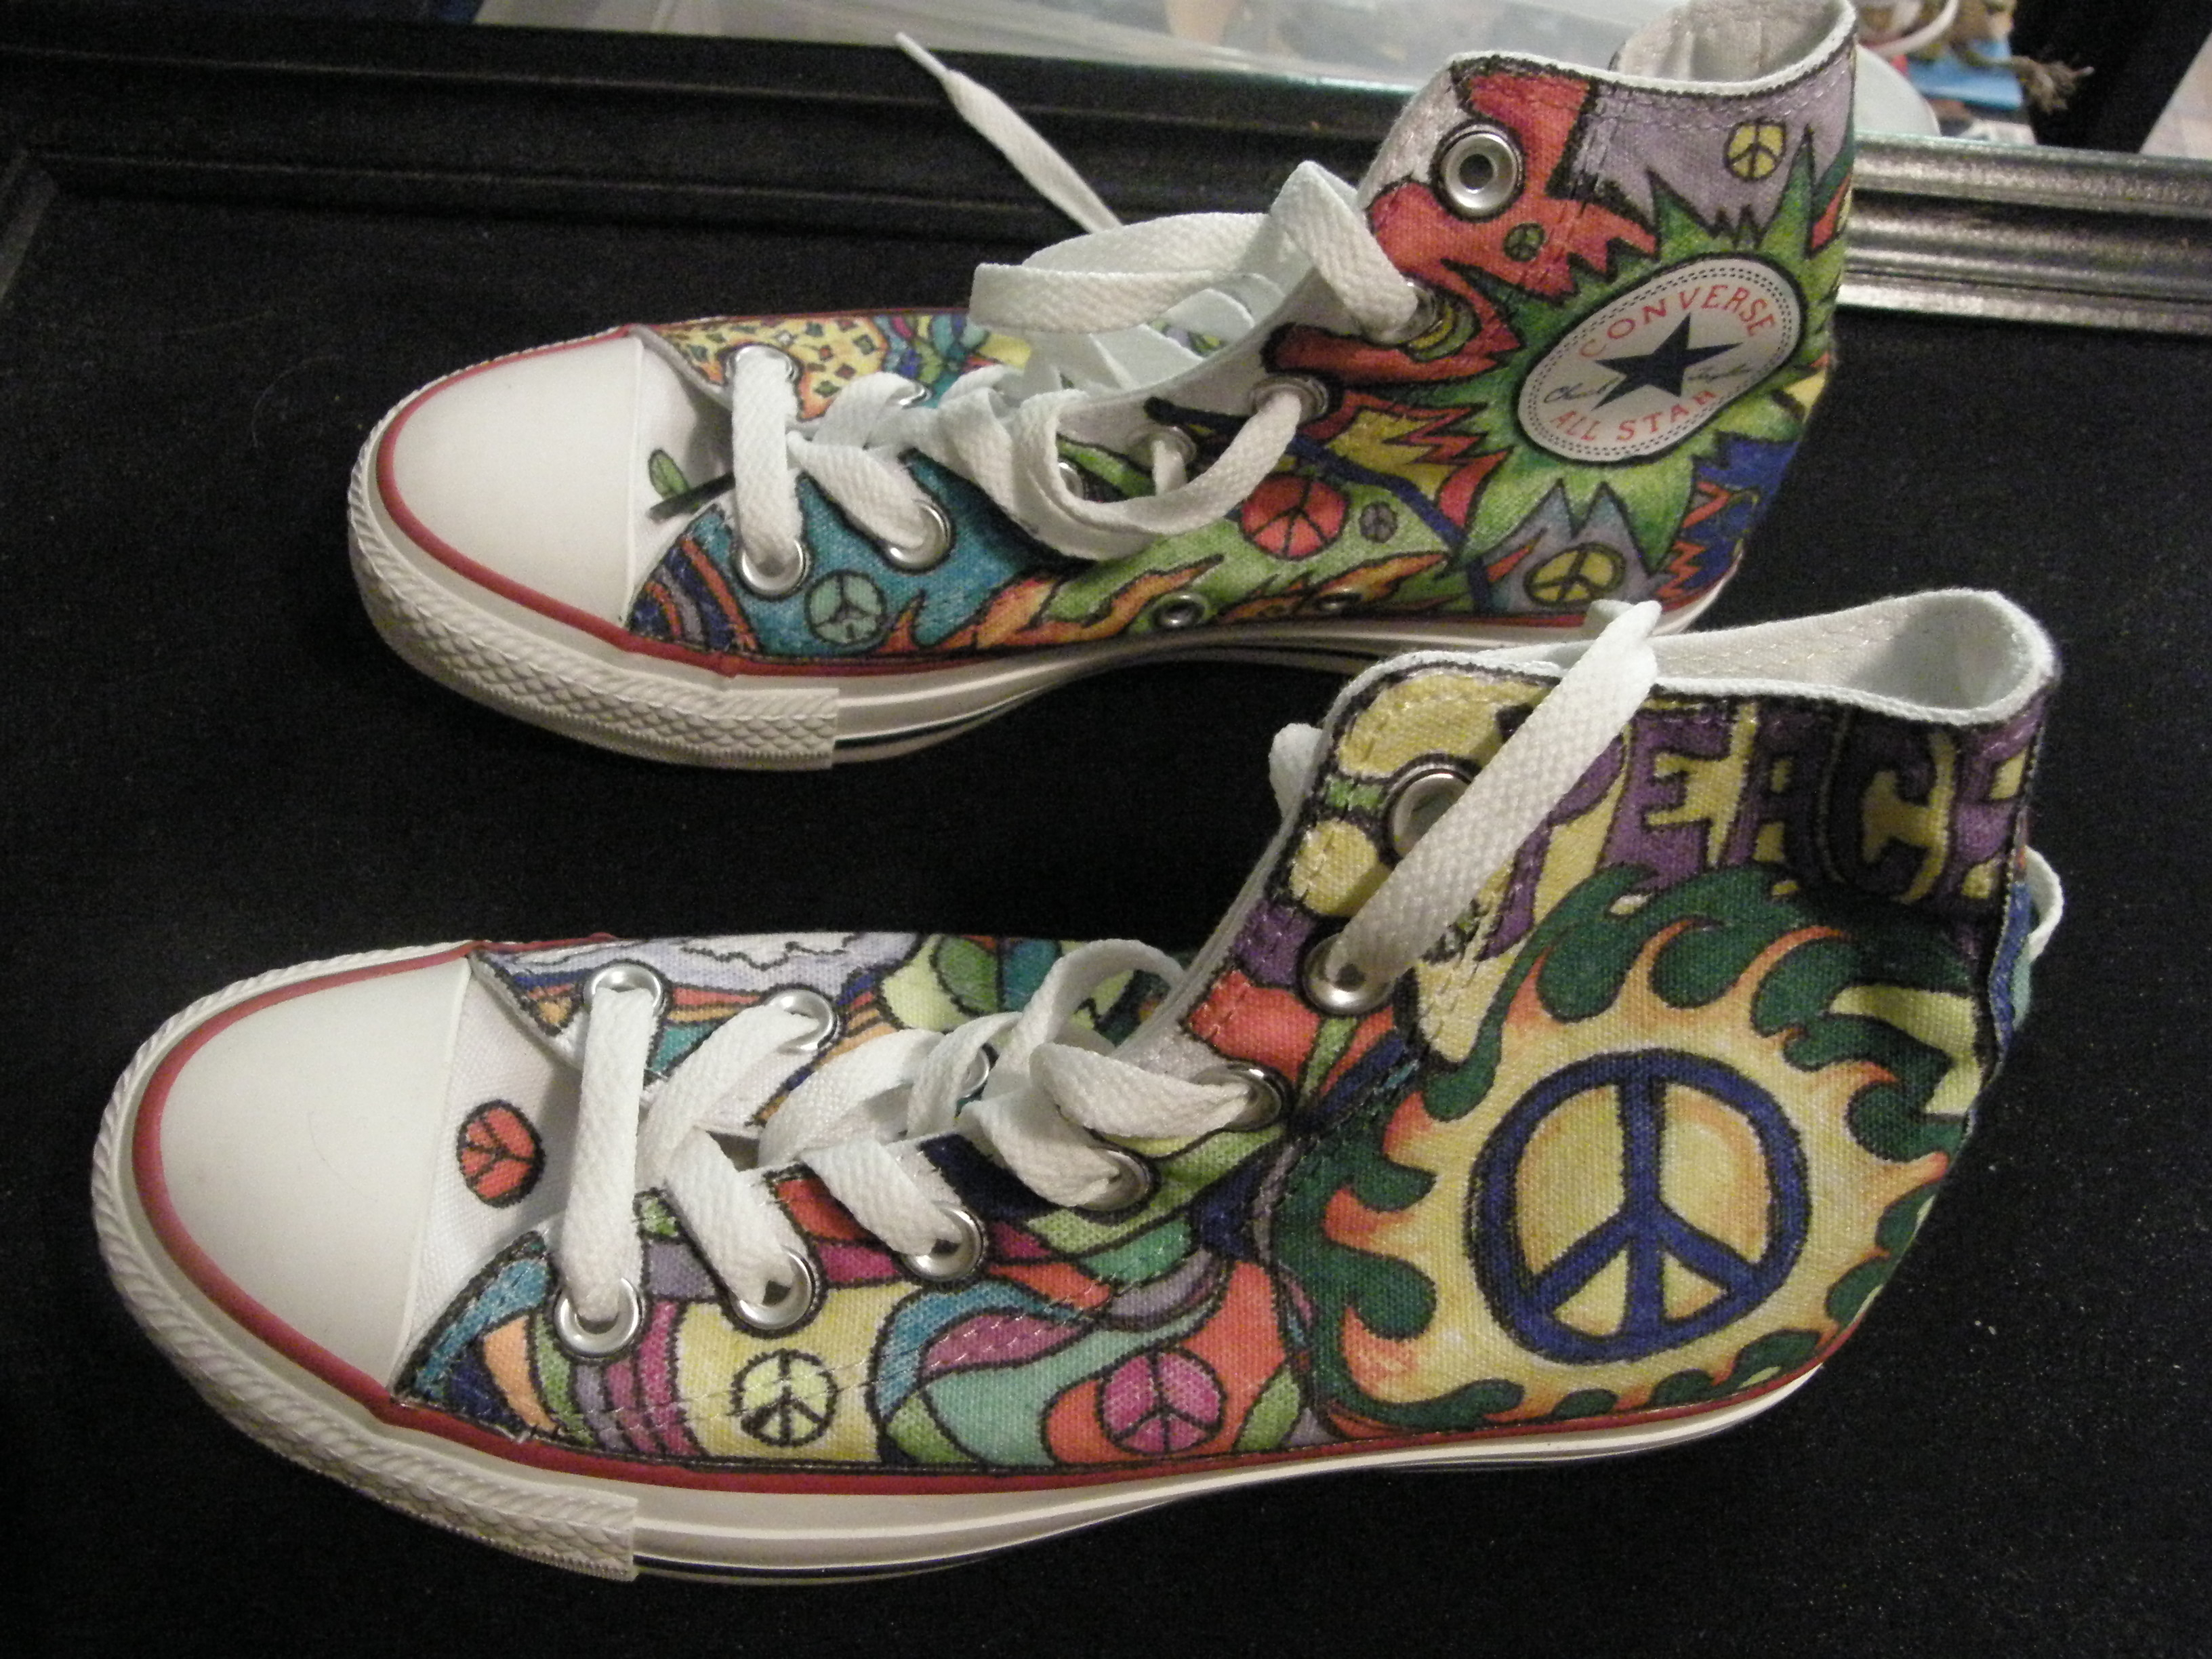 Drawn shoe van KIND A SIGN TOPS~HAND CONVERSE